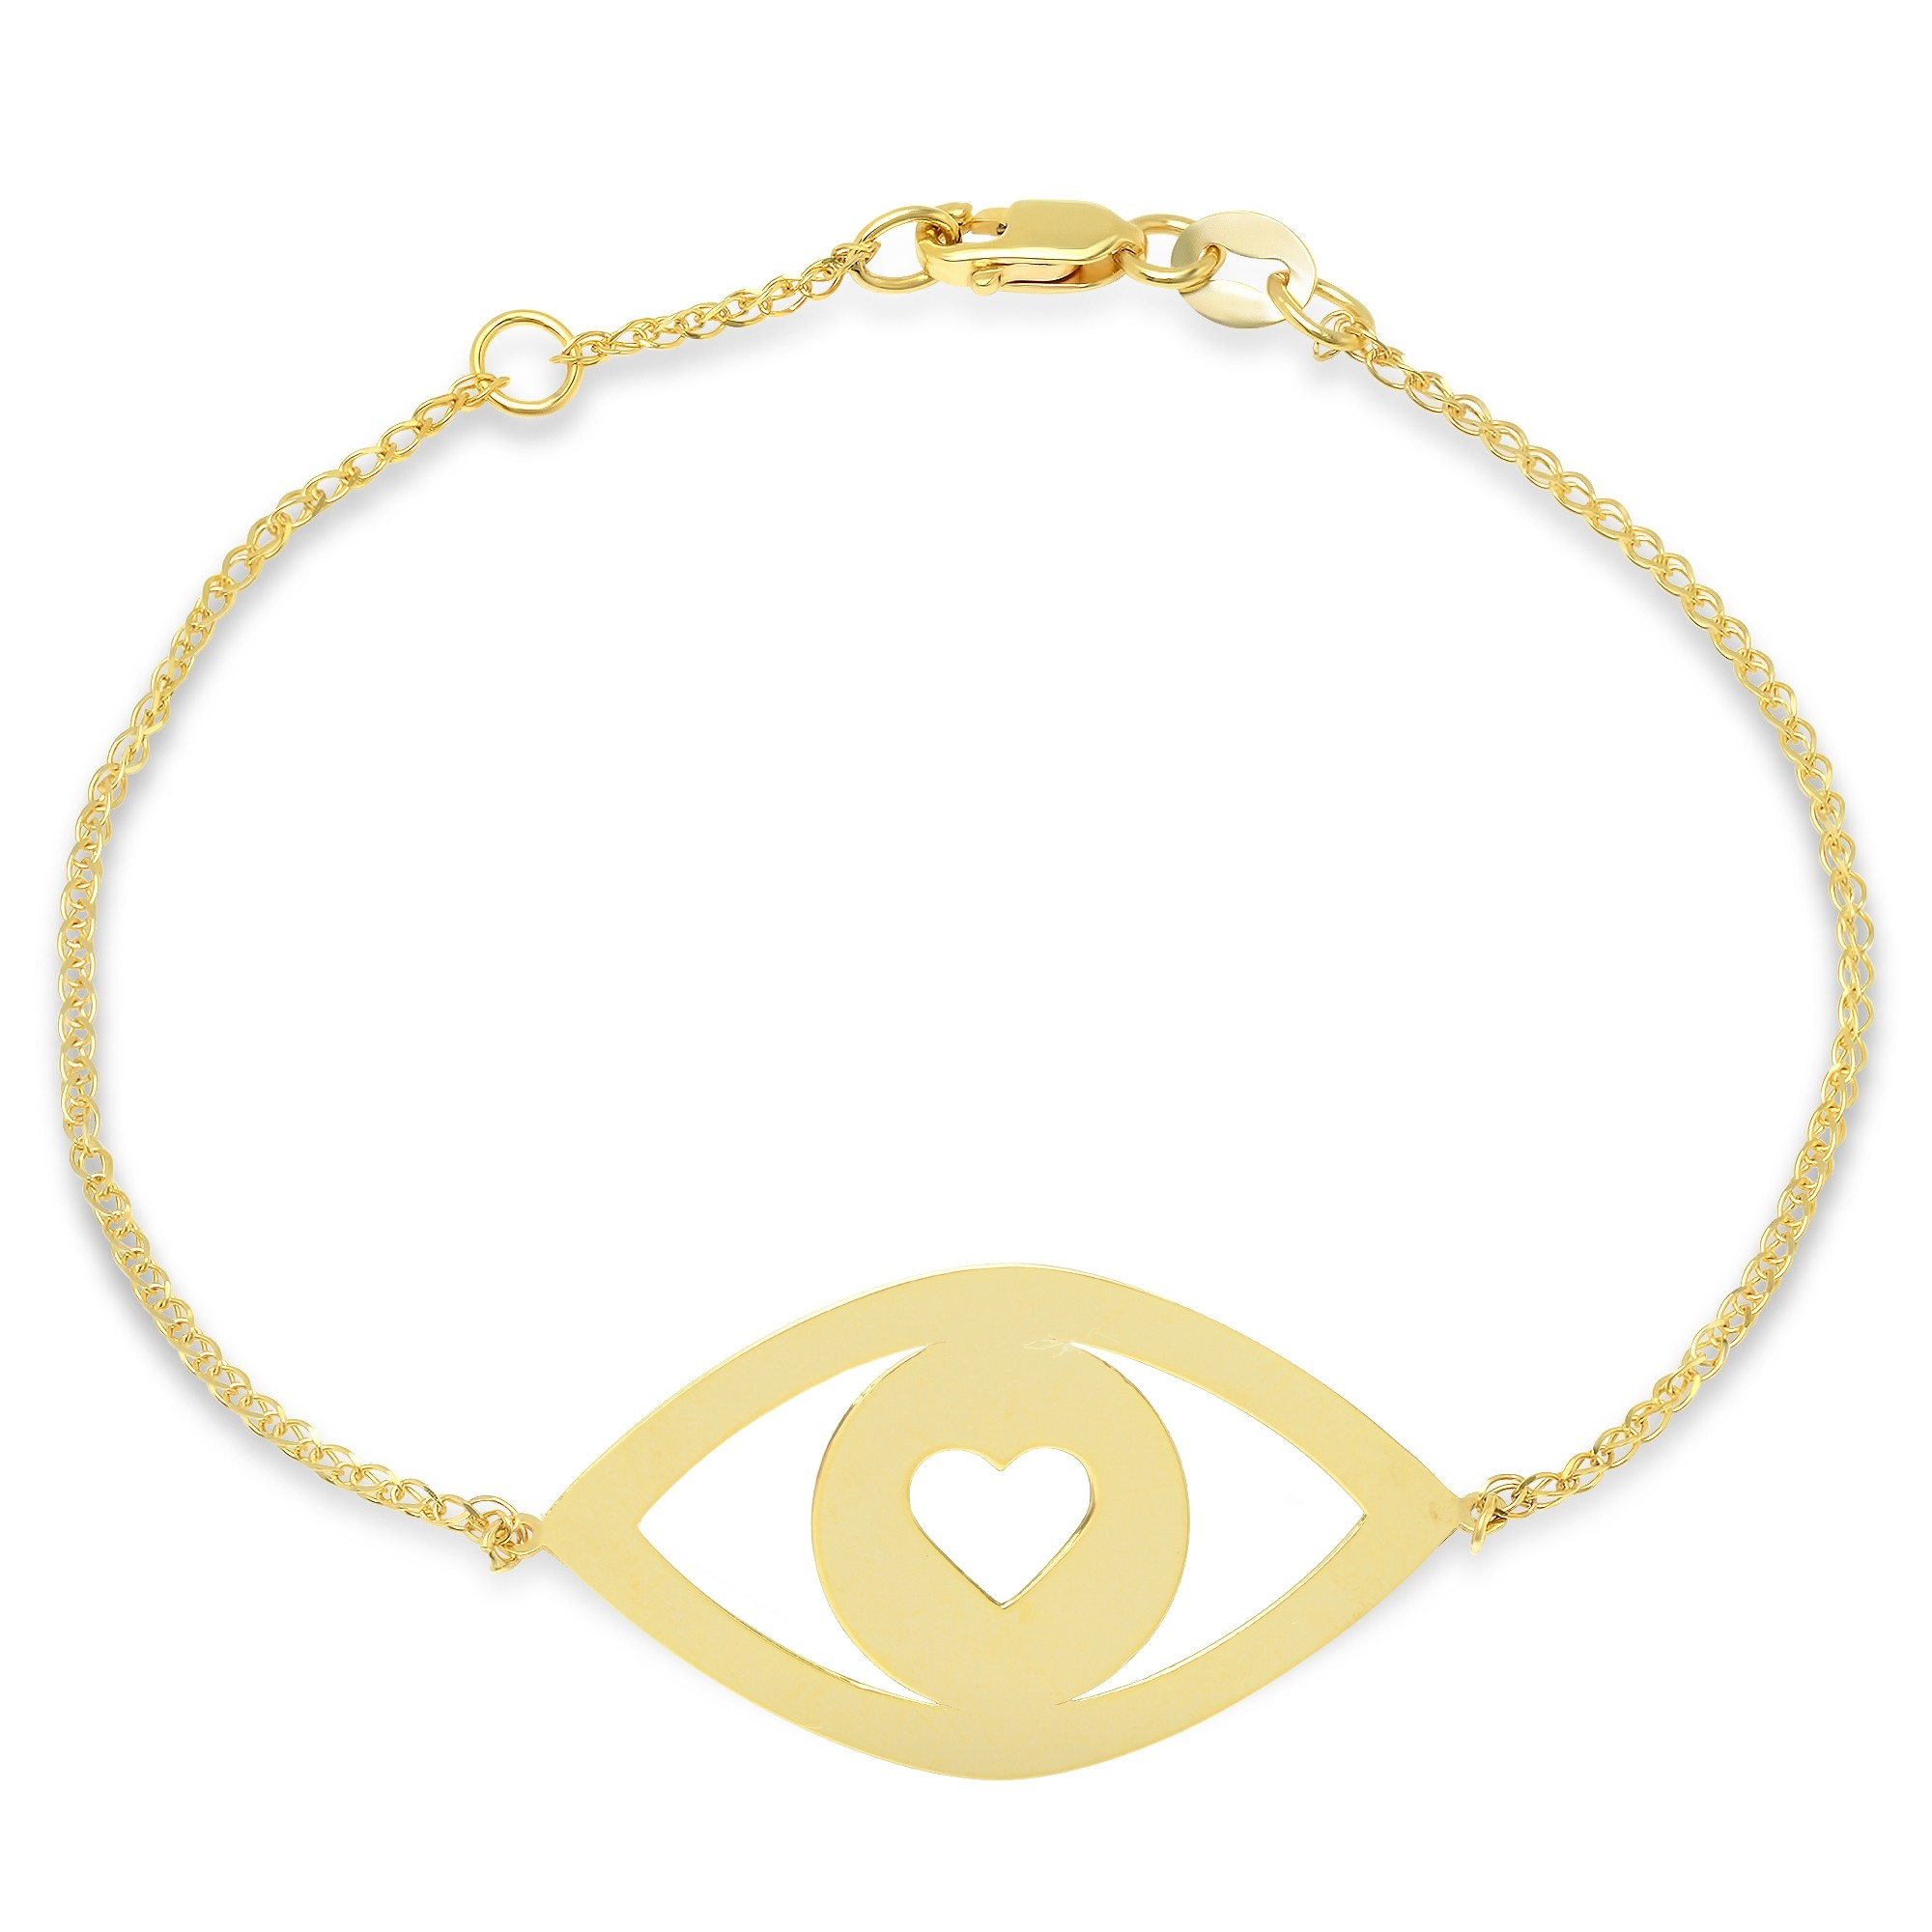 14k Yellow Gold Evil Eye Heart Bracelet